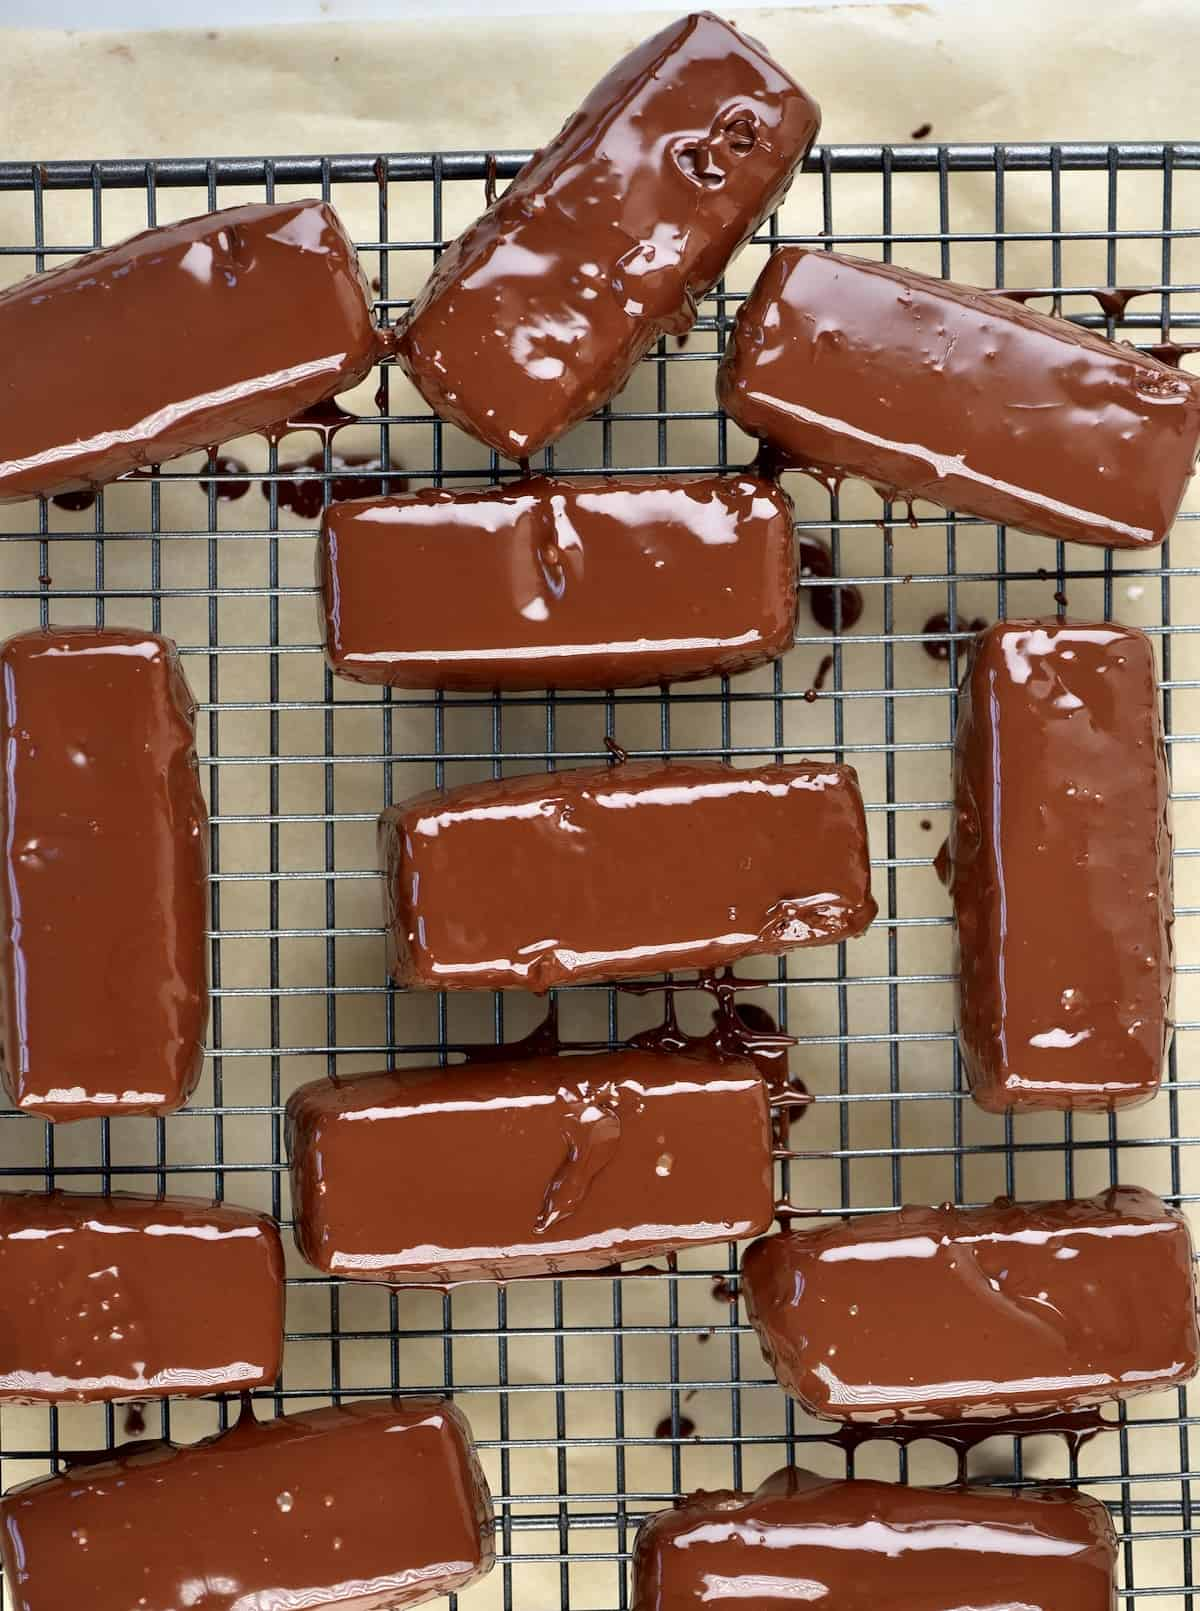 Bounty bars coated in chocolate drying on a cooling rack